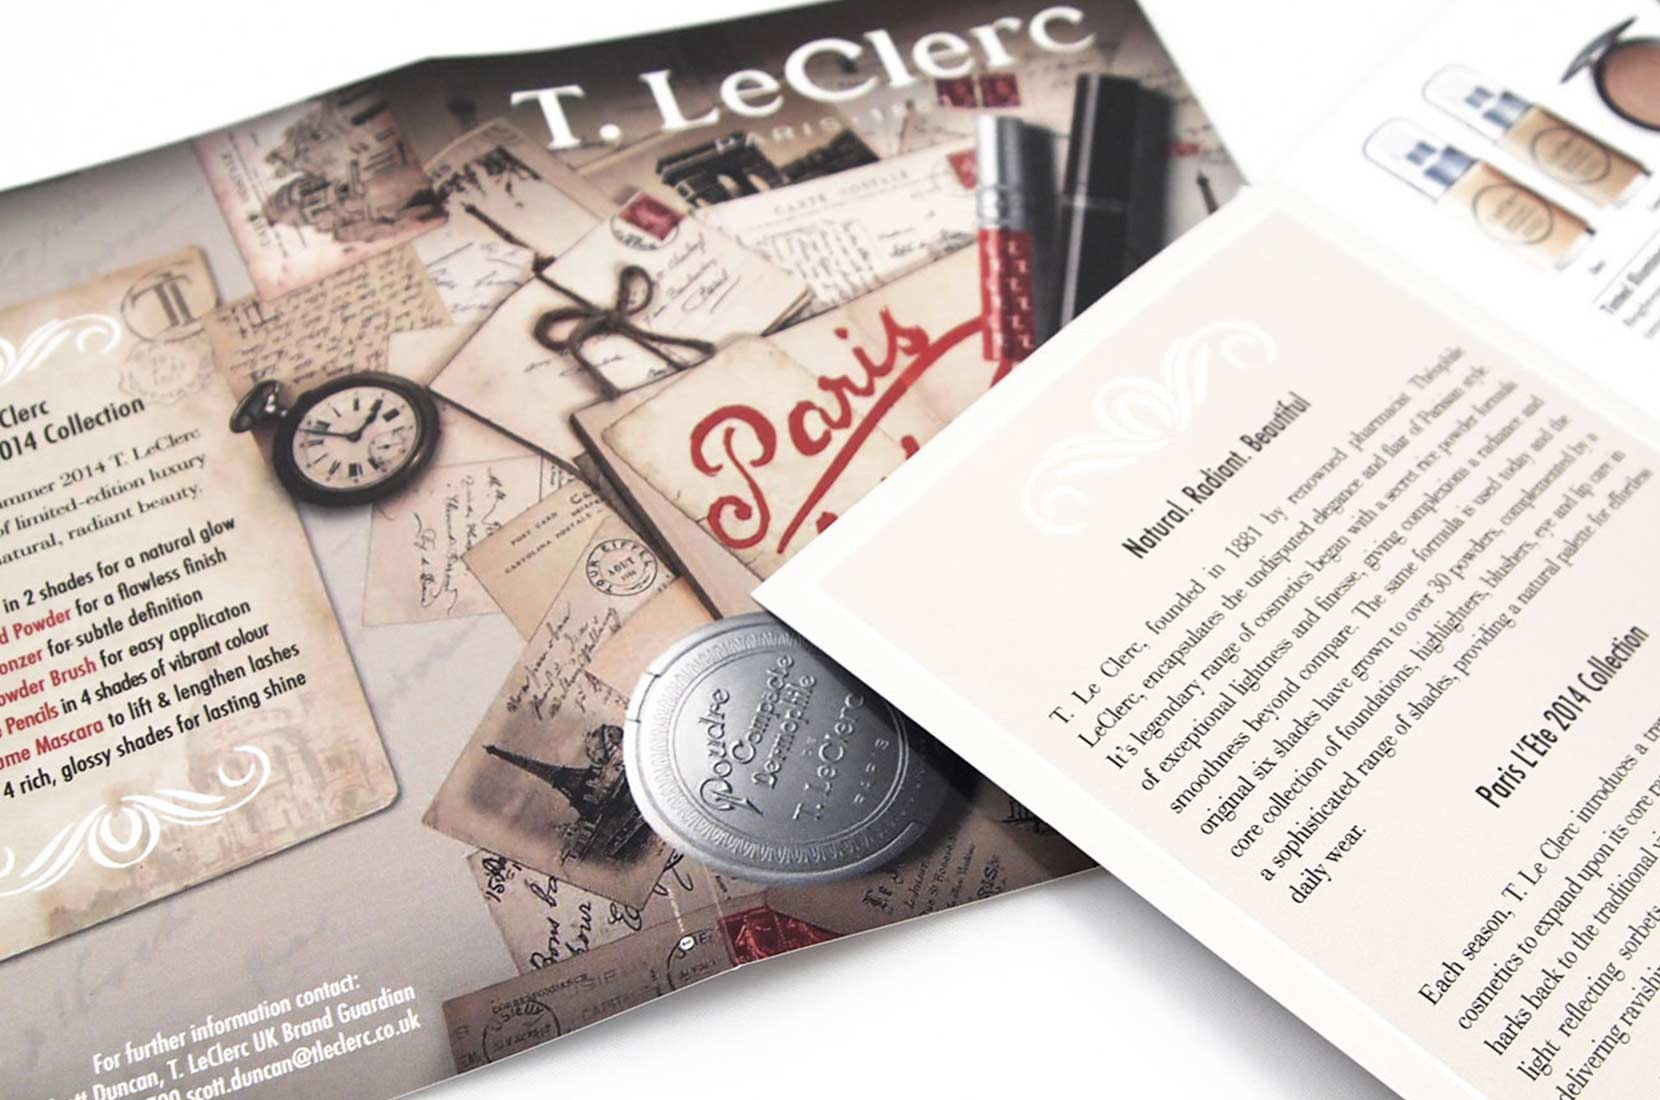 T. LeClerc Paris 2014 Collection